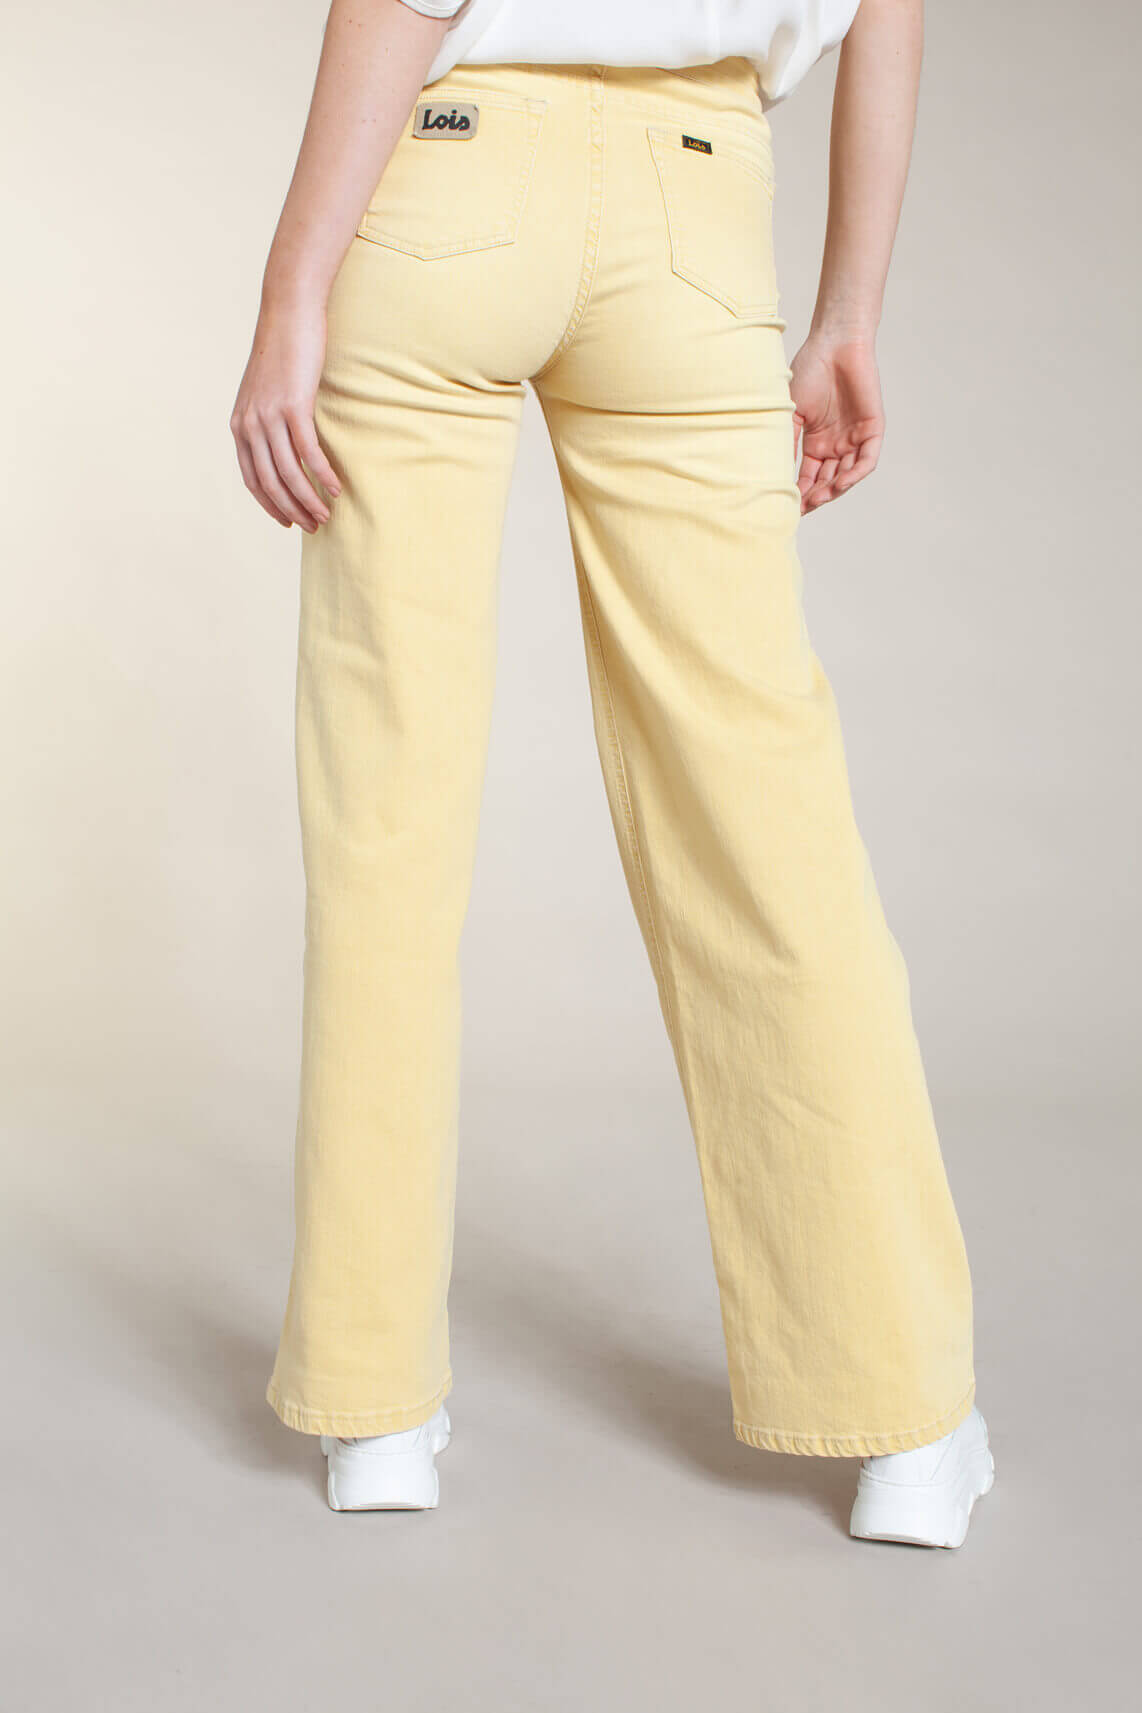 Lois Dames L32 Palazzo flared jeans geel